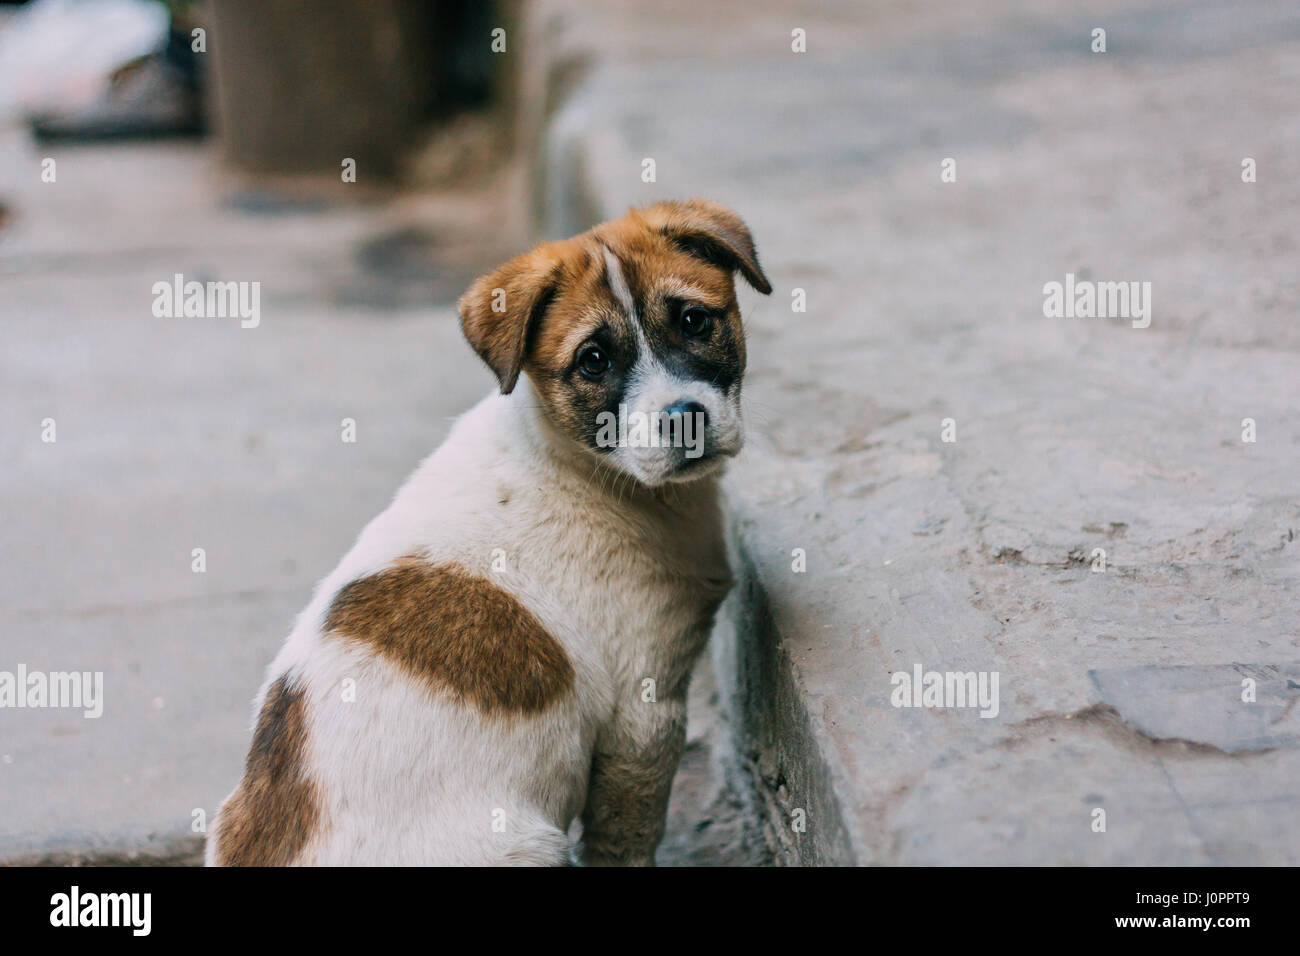 Sad white and brown stray dog standing on a road looking ...